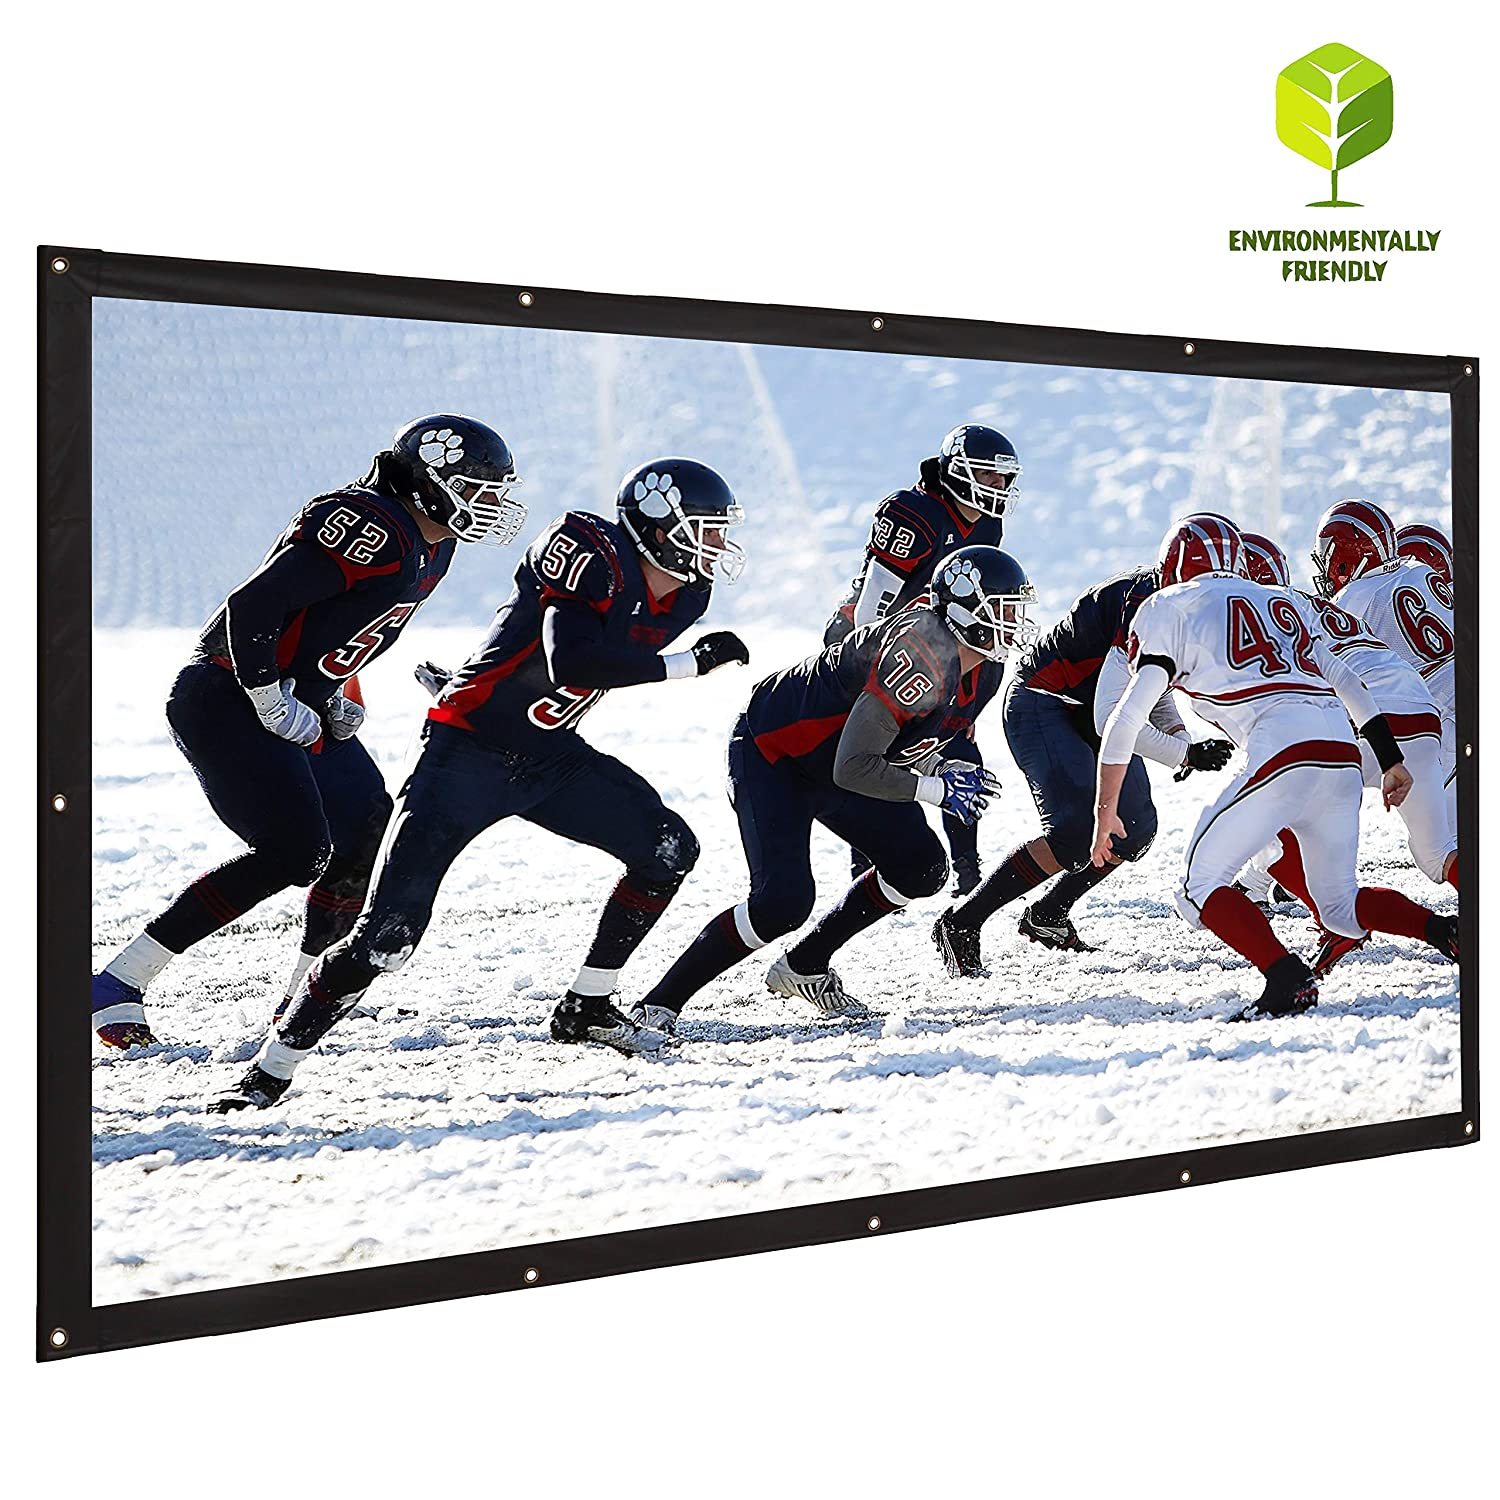 KPCB Portable Projector Screen Foldable Canvas Material for Home and Outdoor Movie 100 inch 16:9 Varmax